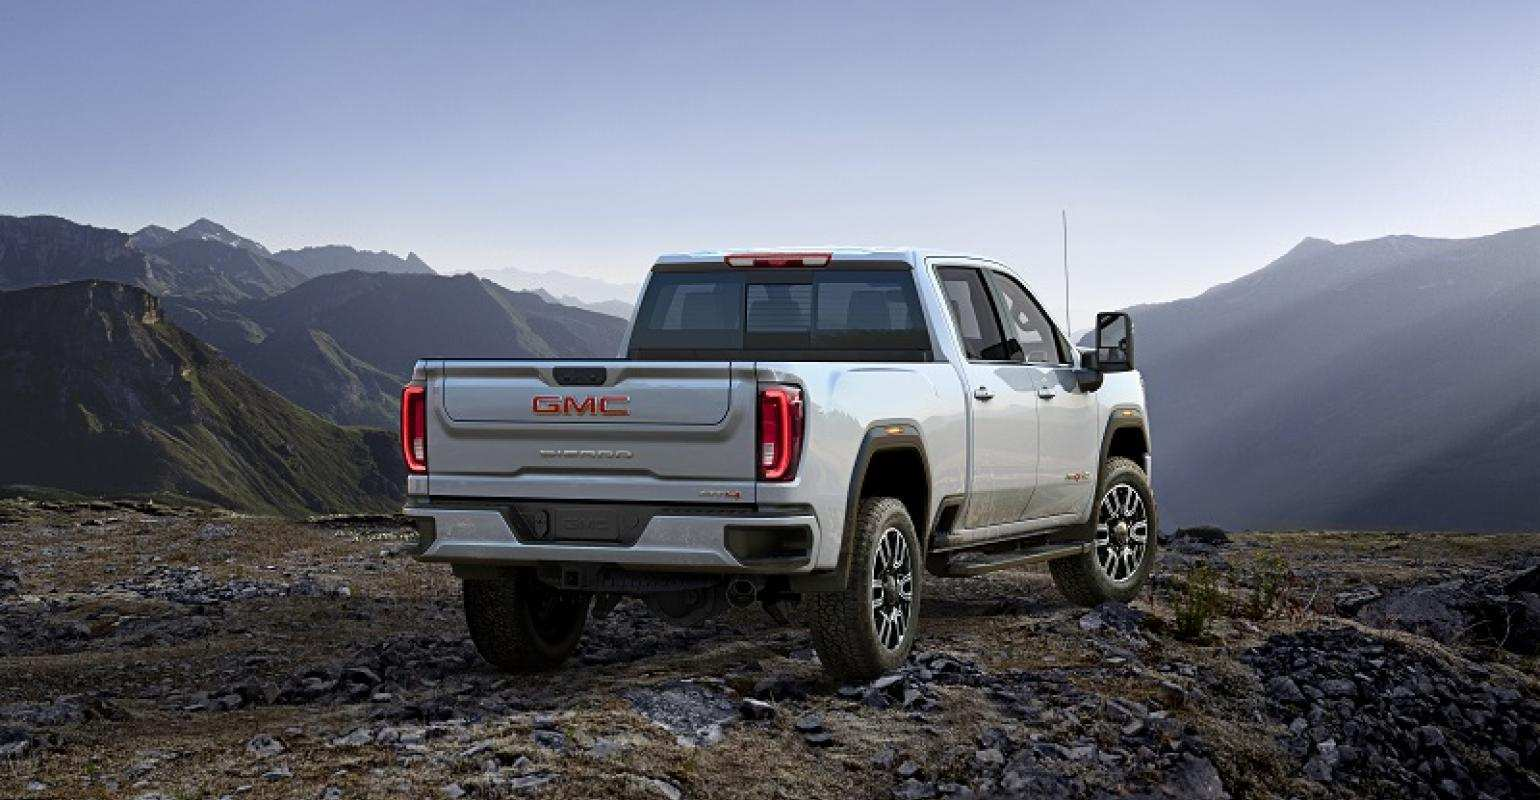 28 Best Review 2020 GMC Sierra 2500Hd Model for 2020 GMC Sierra 2500Hd